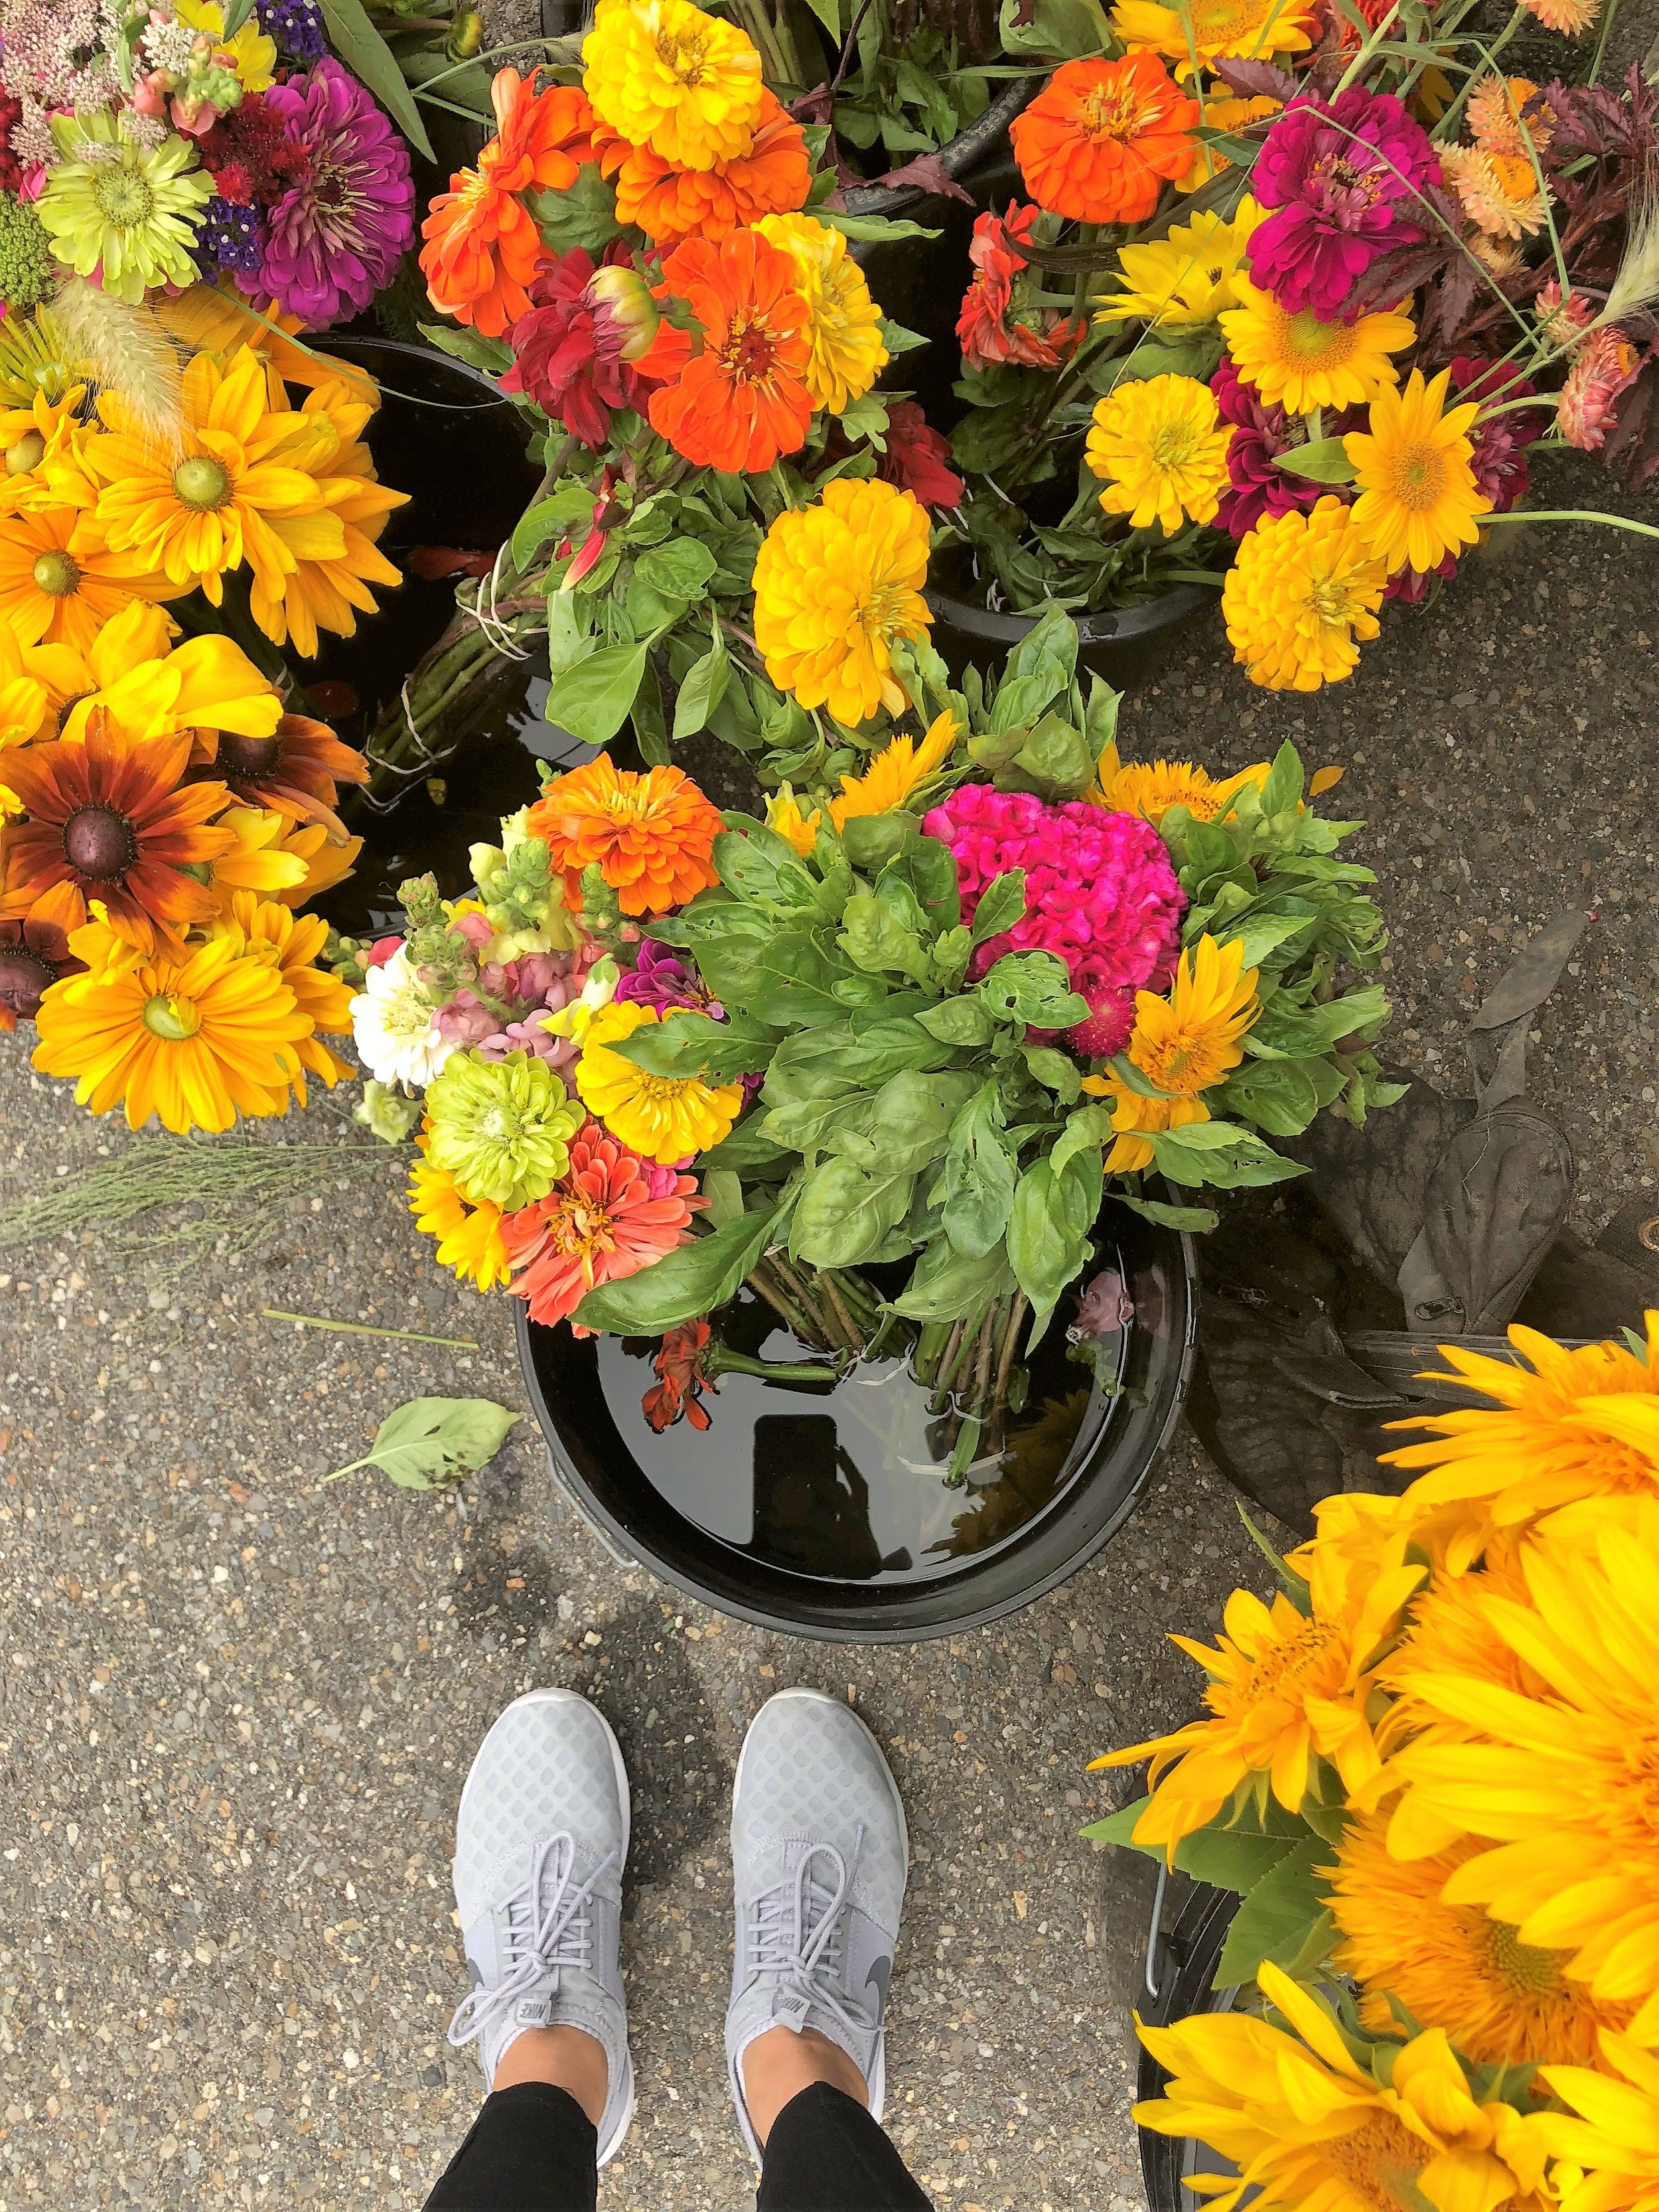 My favorite part of our trip was ending it at the  Portsmouth Farmers' Market . We stocked up on flowers to bring home and cider donuts for the car ride. There were a few stalls that offered breakfast foods. We almost wished that we had waited to grab our AM bites here!